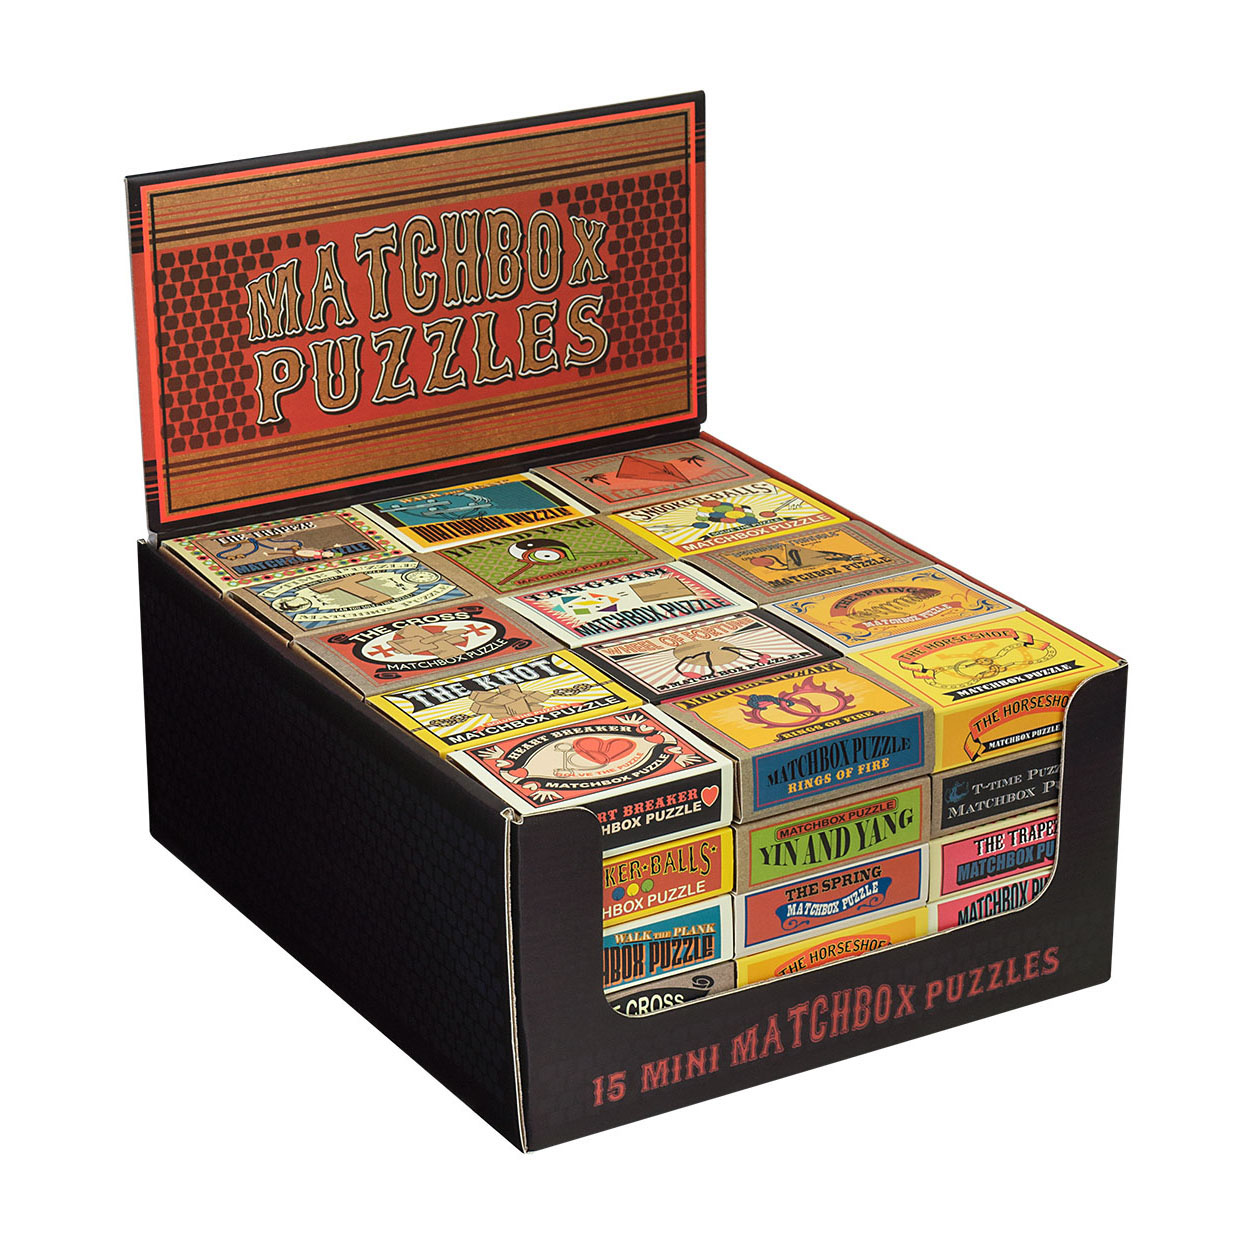 Matchbox Puzzles Display Unit